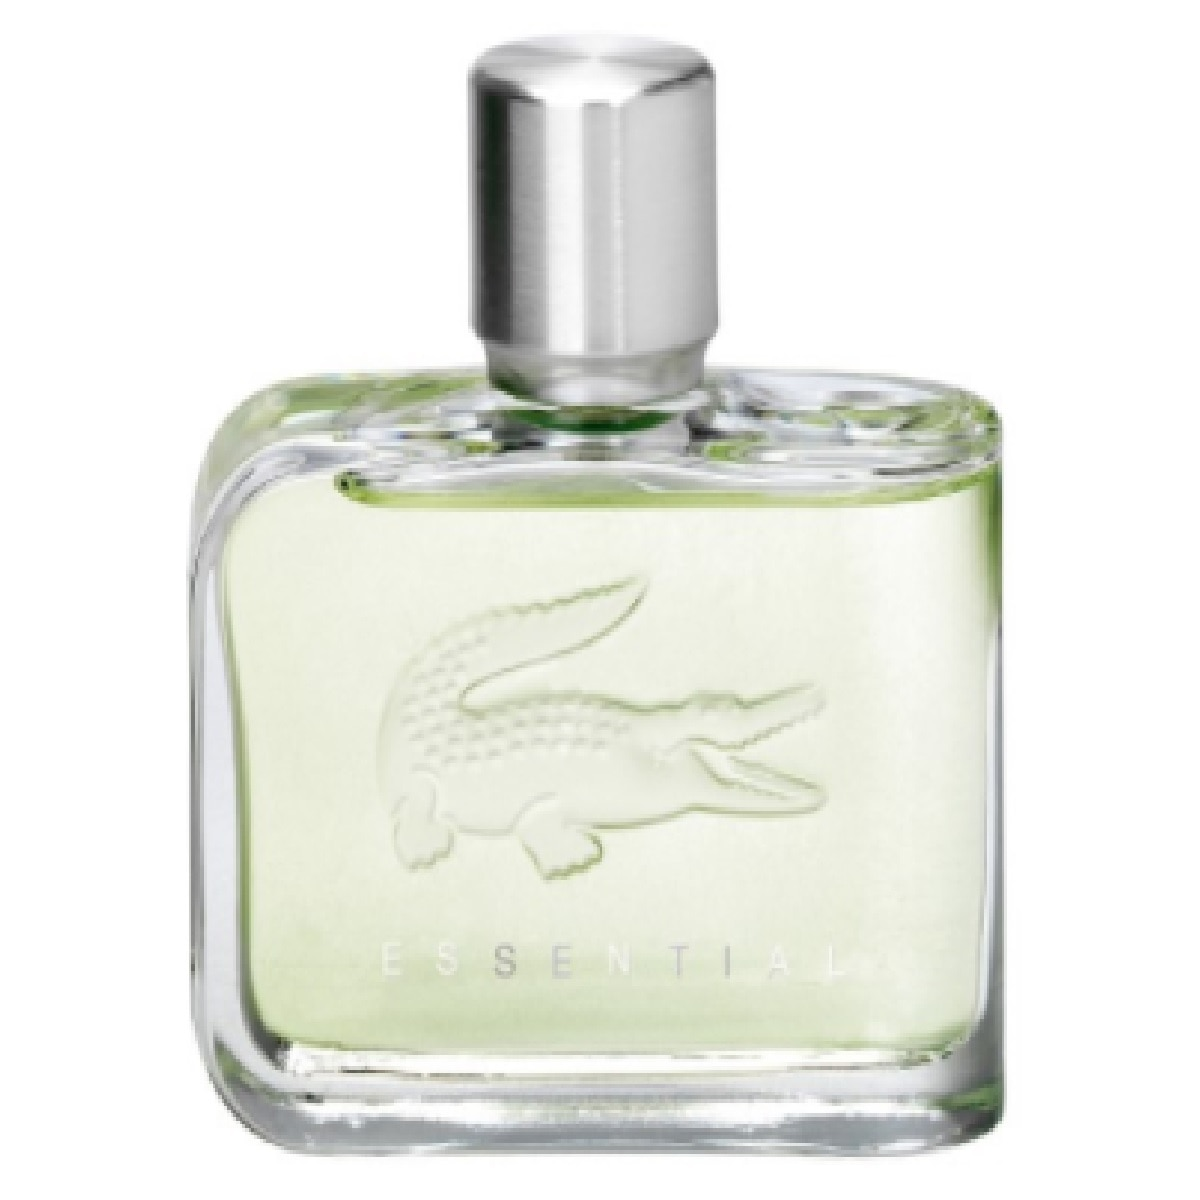 LACOSTE ESSENTIAL 125 ML EAU DE TOILETTE